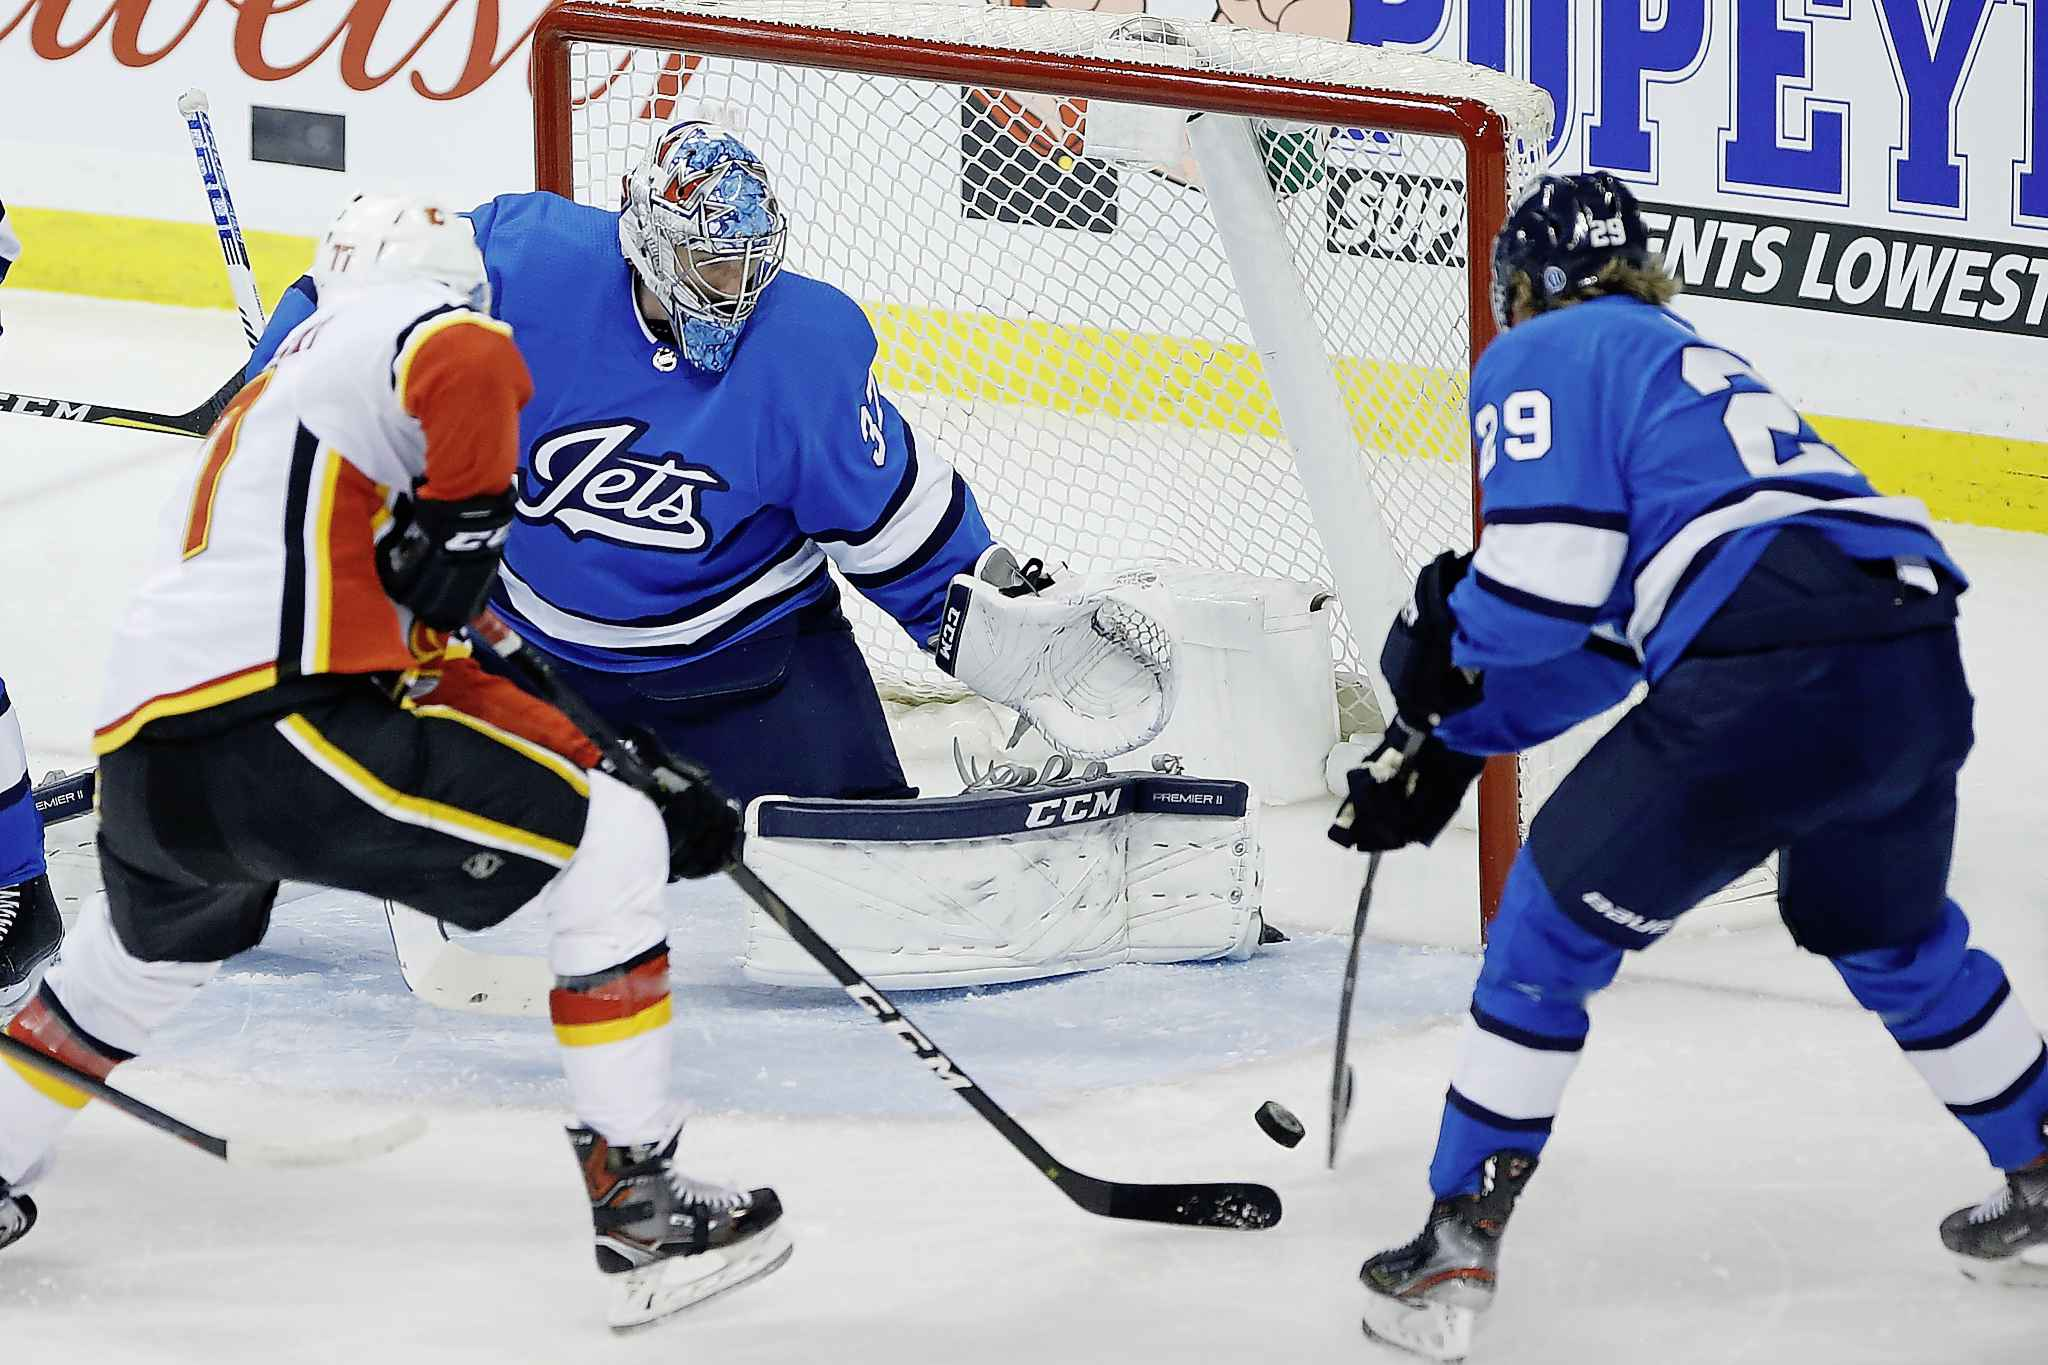 JOHN WOODS / THE CANADIAN PRESS</p><p>Winnipeg Jets goaltender Connor Hellebuyck (37) saves the shot by Calgary Flames' Mark Jankowski (77) during first period NHL action.</p>